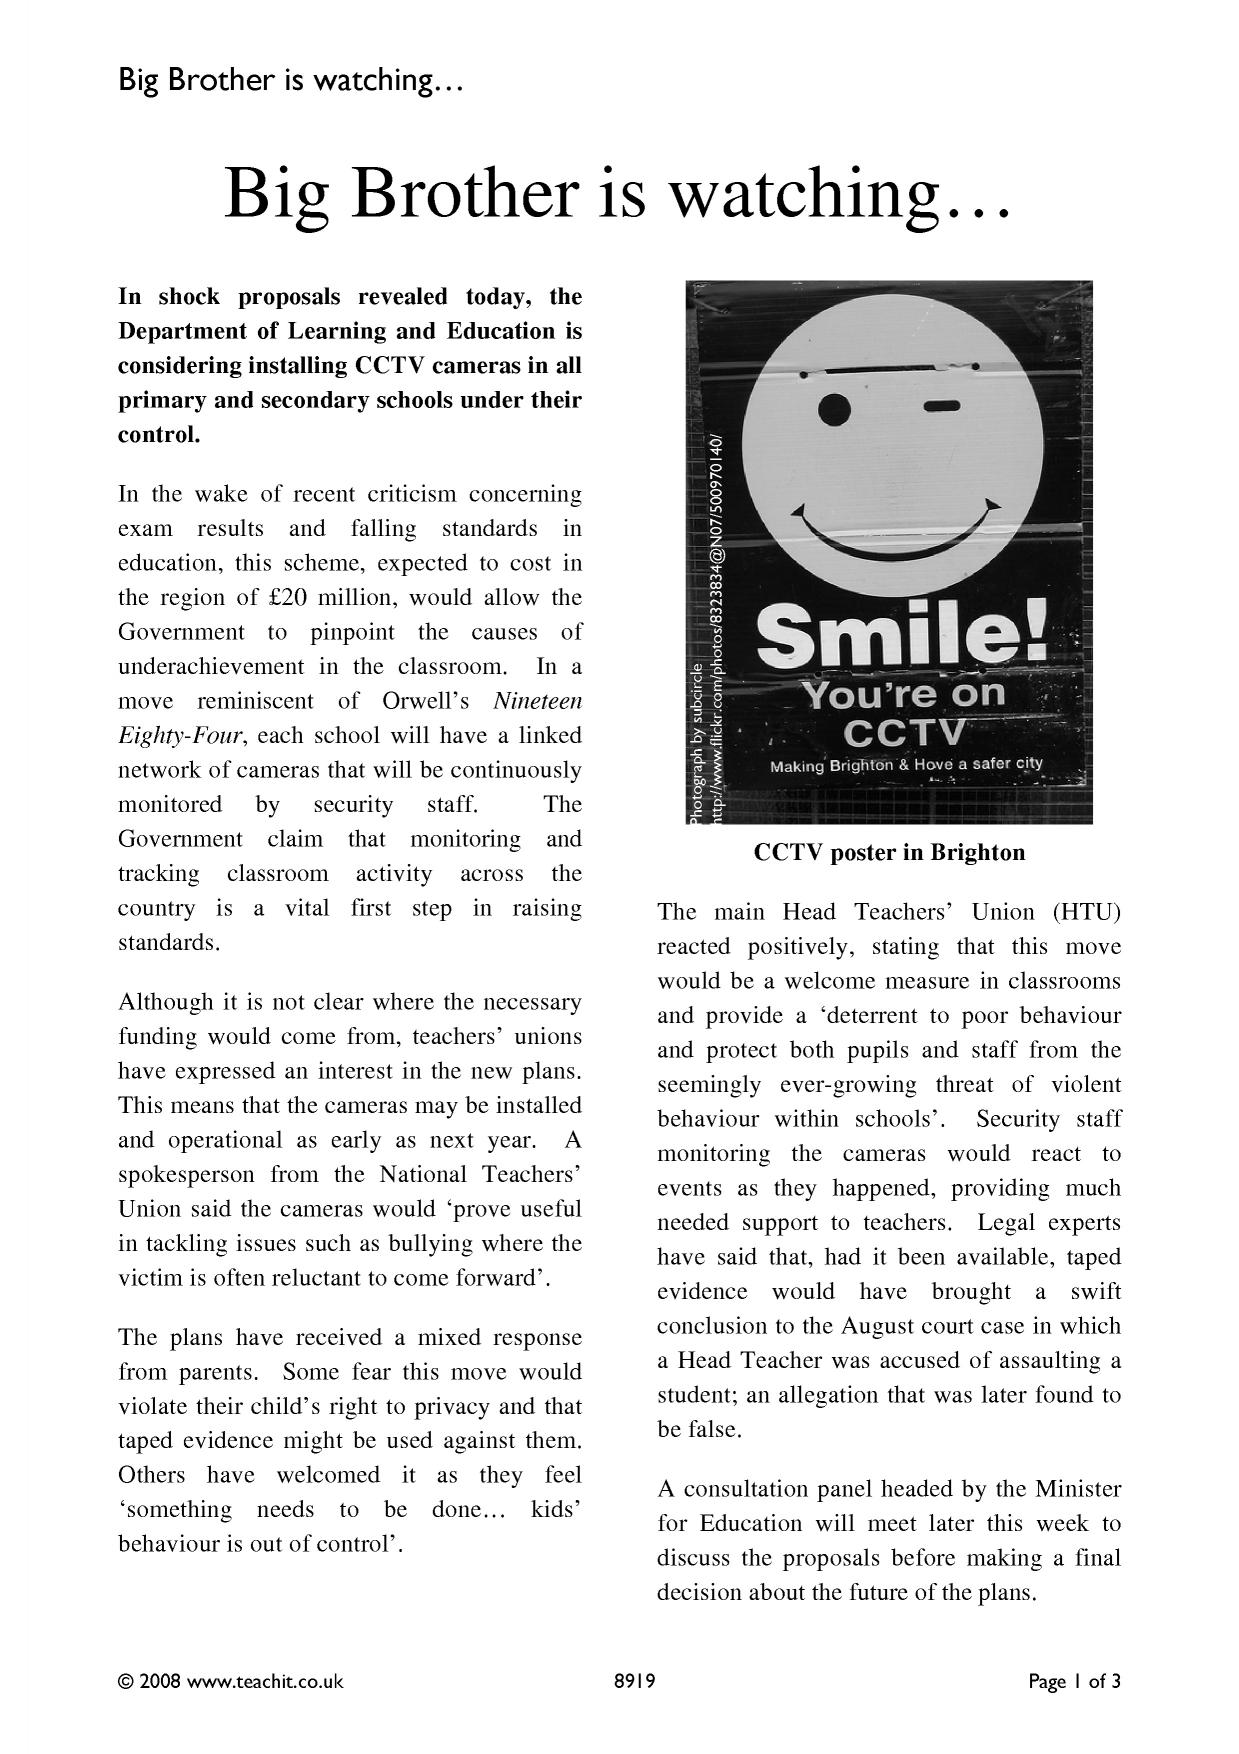 keyhole persuasive essay Developing real-world intelligence: teaching argumentative writing through debate the form of argument in class for many years, i taught argument according to a specific structure described in sheridan baker's the practical stylist, holding stu- dents to the keyhole approach to writing their essays.